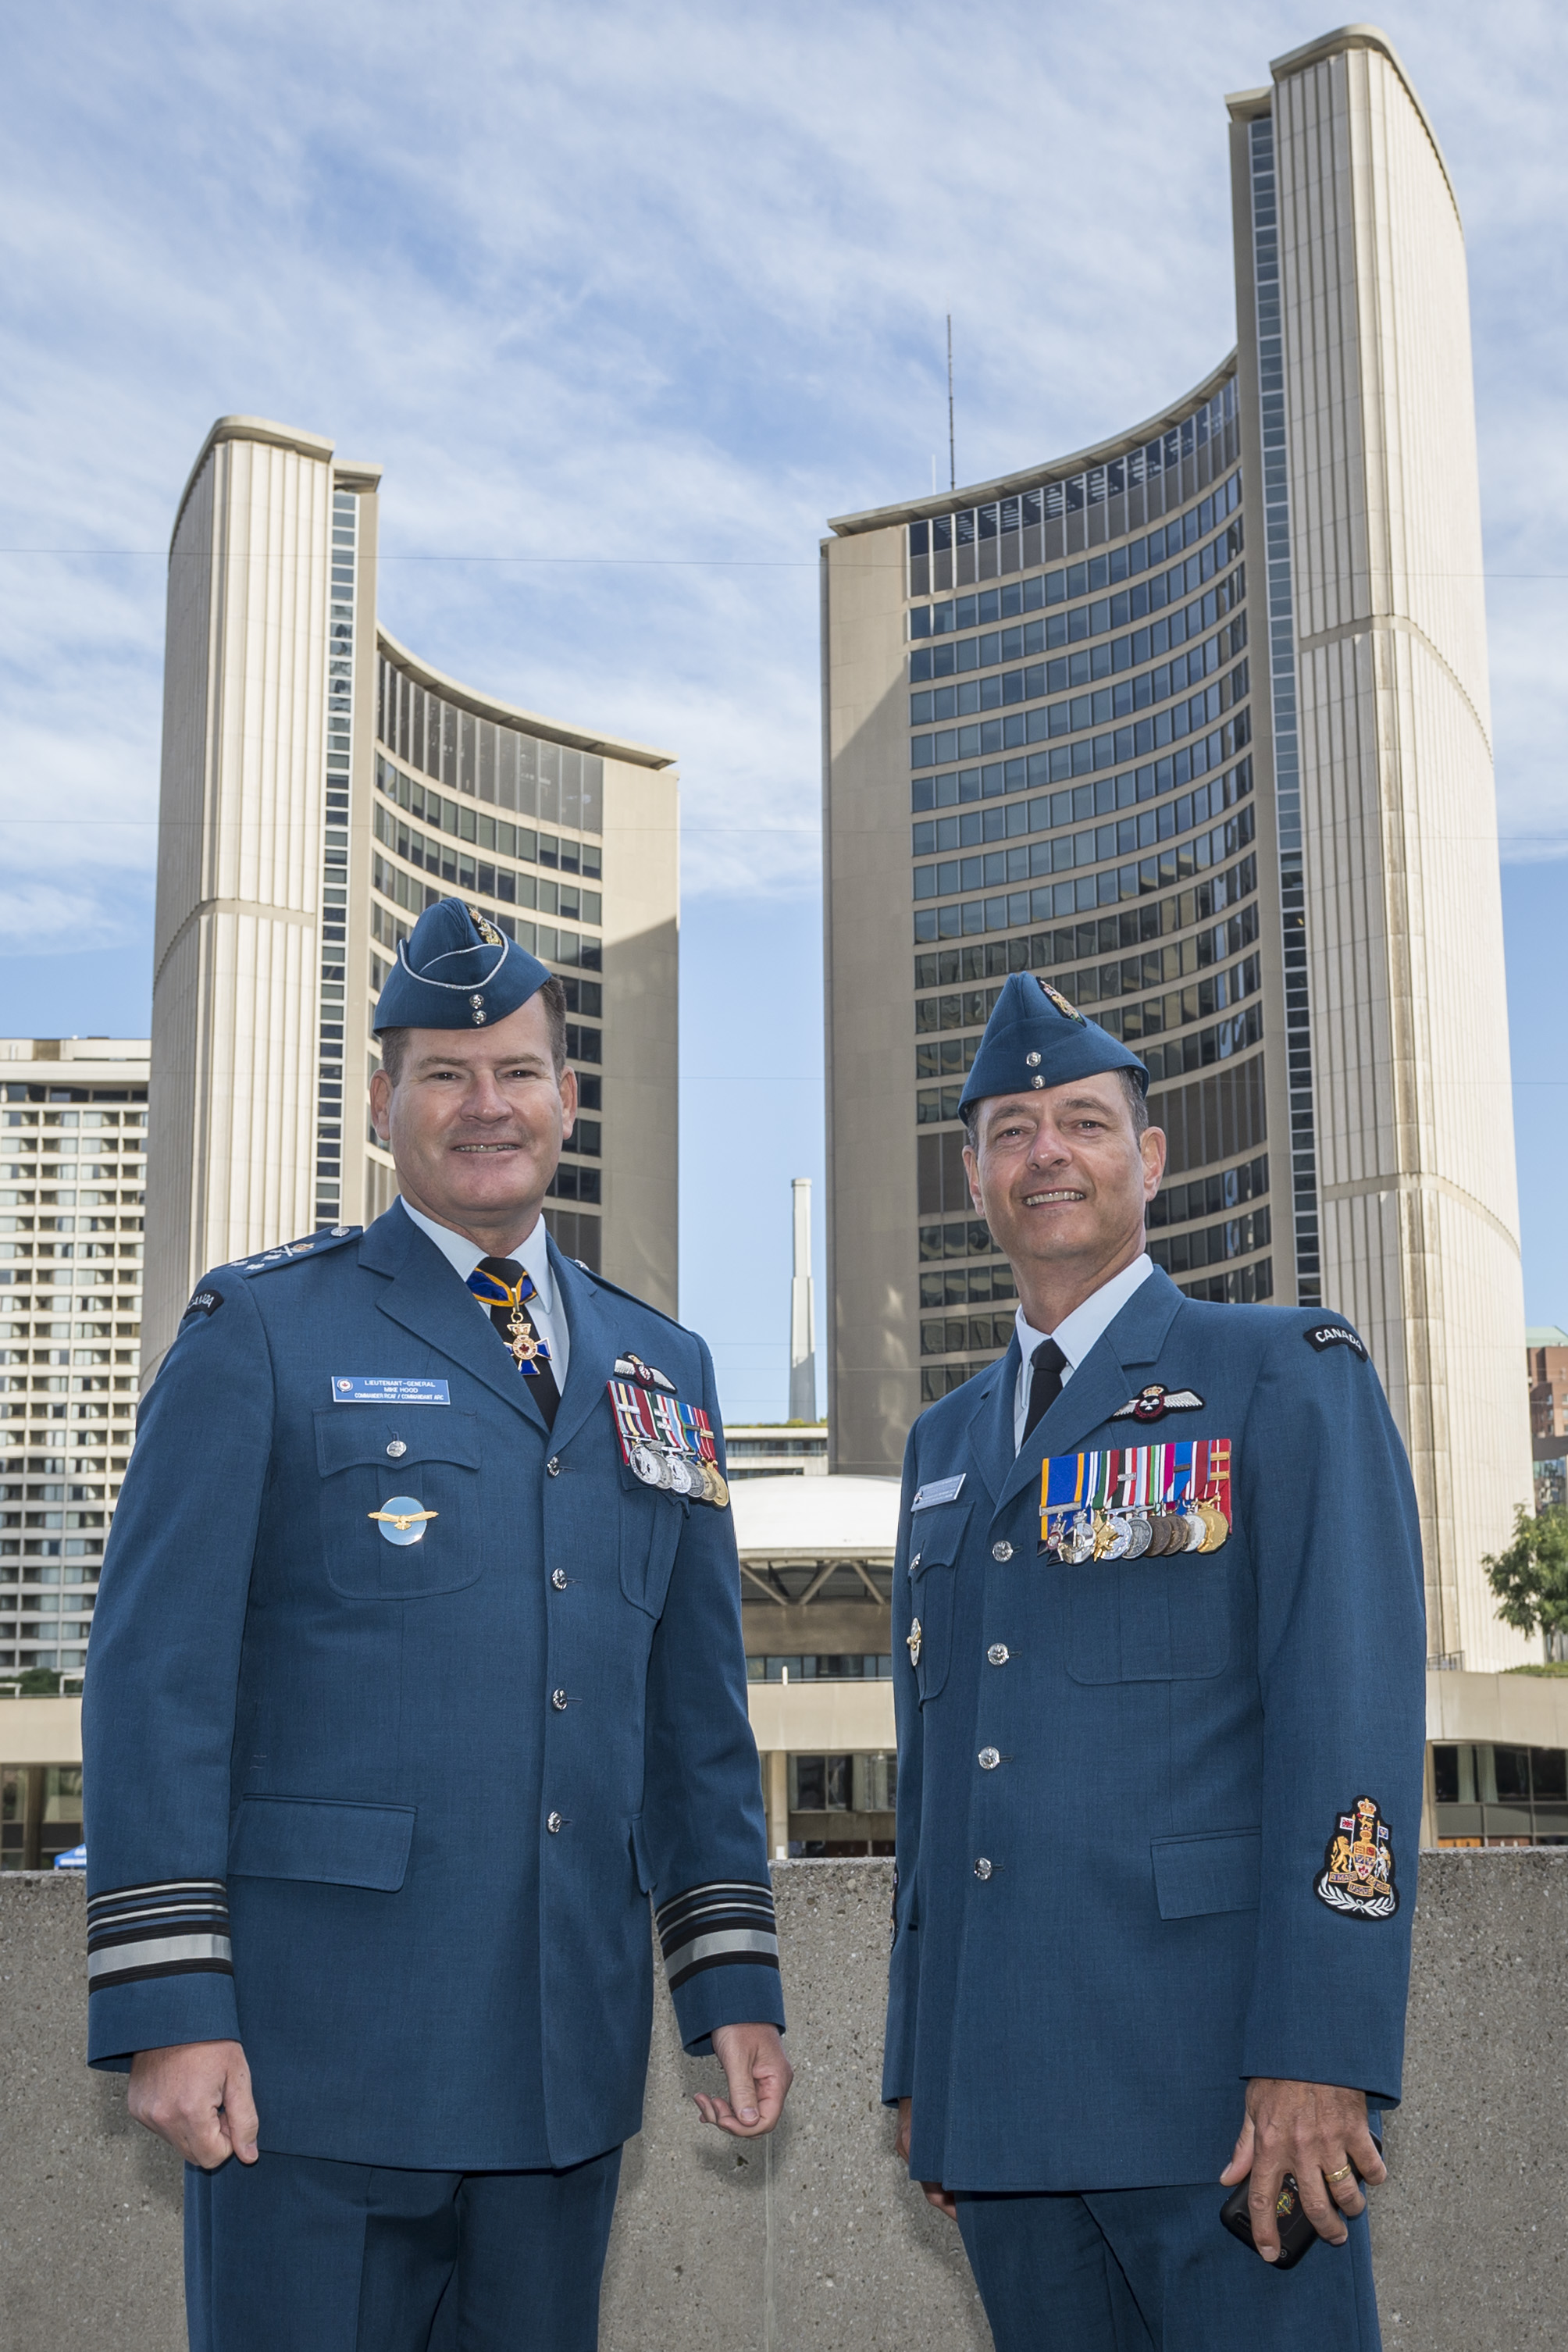 Two men wearing blue military tunics and hats stand in front of two curved tall buildings (the Toronto City Hall).